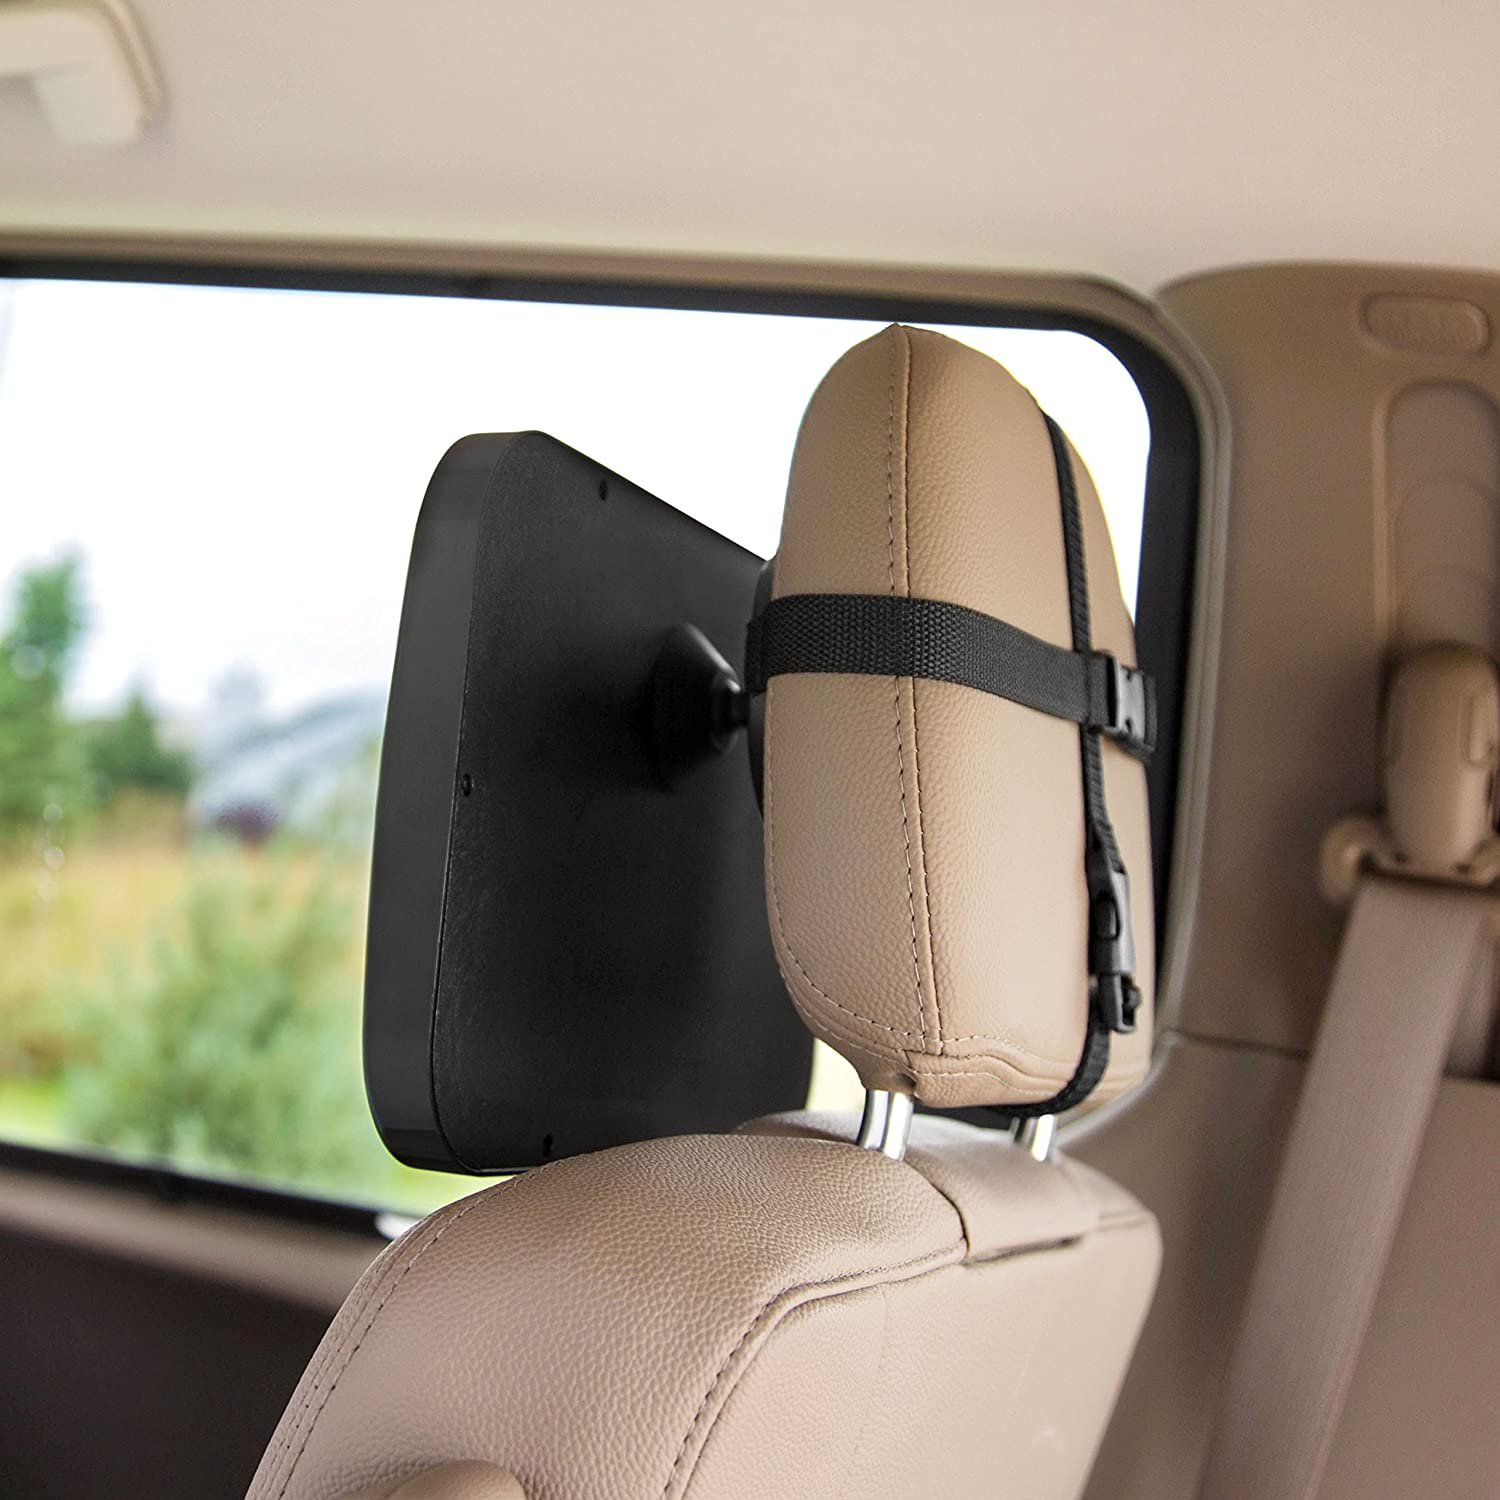 Convex Rear Facing Backseat Mirror is Shatterproof and Adjustable 360 Swivel Car Baby Mirror Helps Keep an Eye on Your Infant Wide Enovoe Baby Car Seat Mirror with Bonus Cleaning Cloth